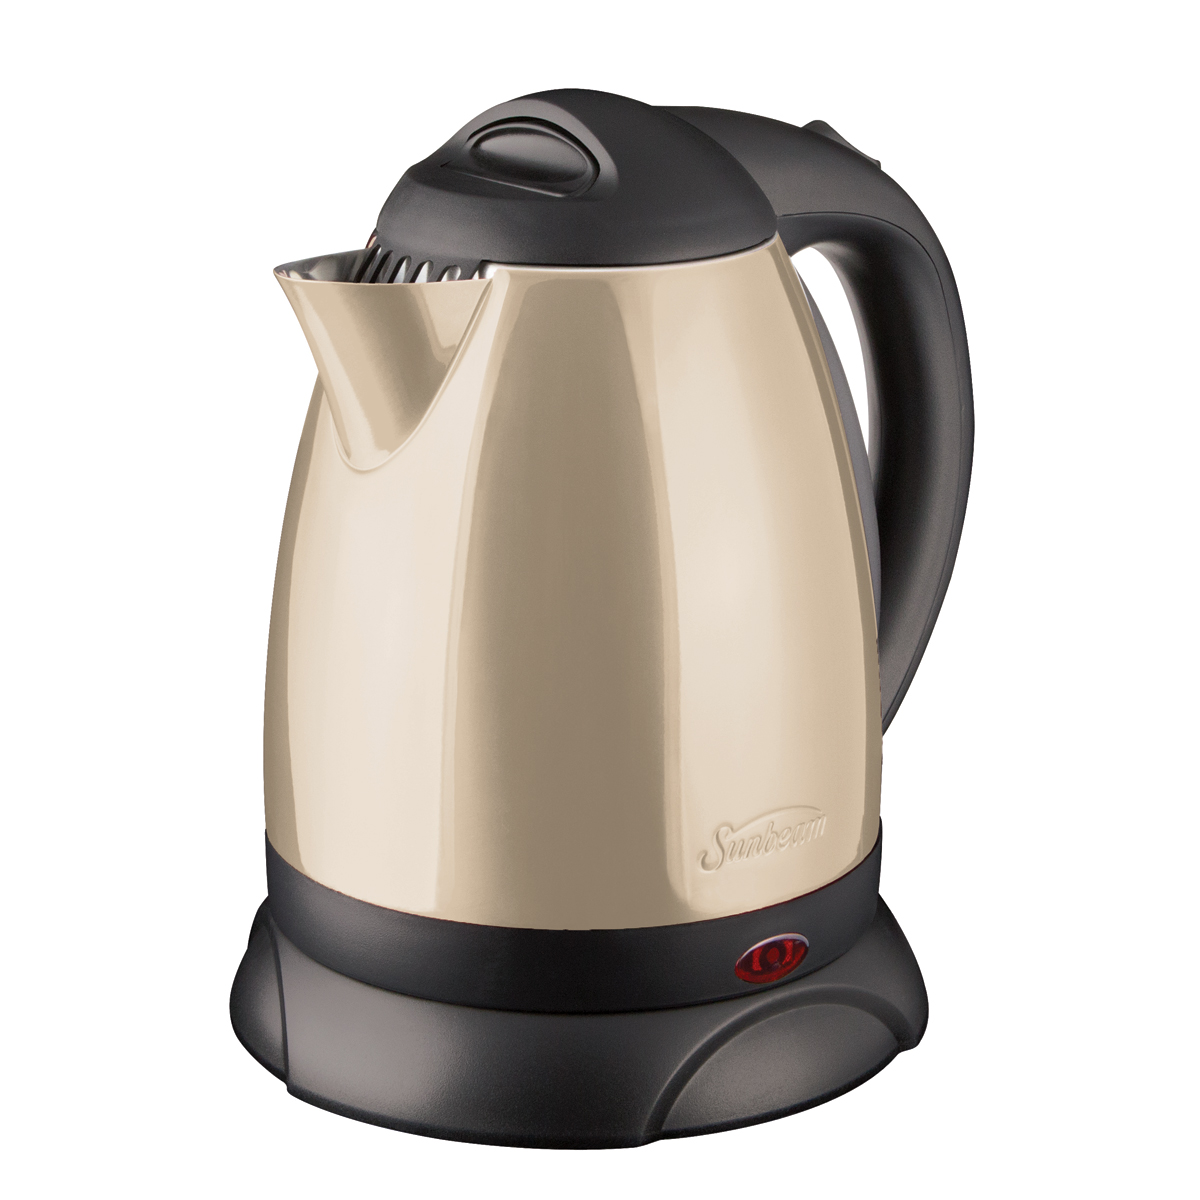 Sunbeam 174 1 7l Cordless Electric Kettle Champagne Shimmer